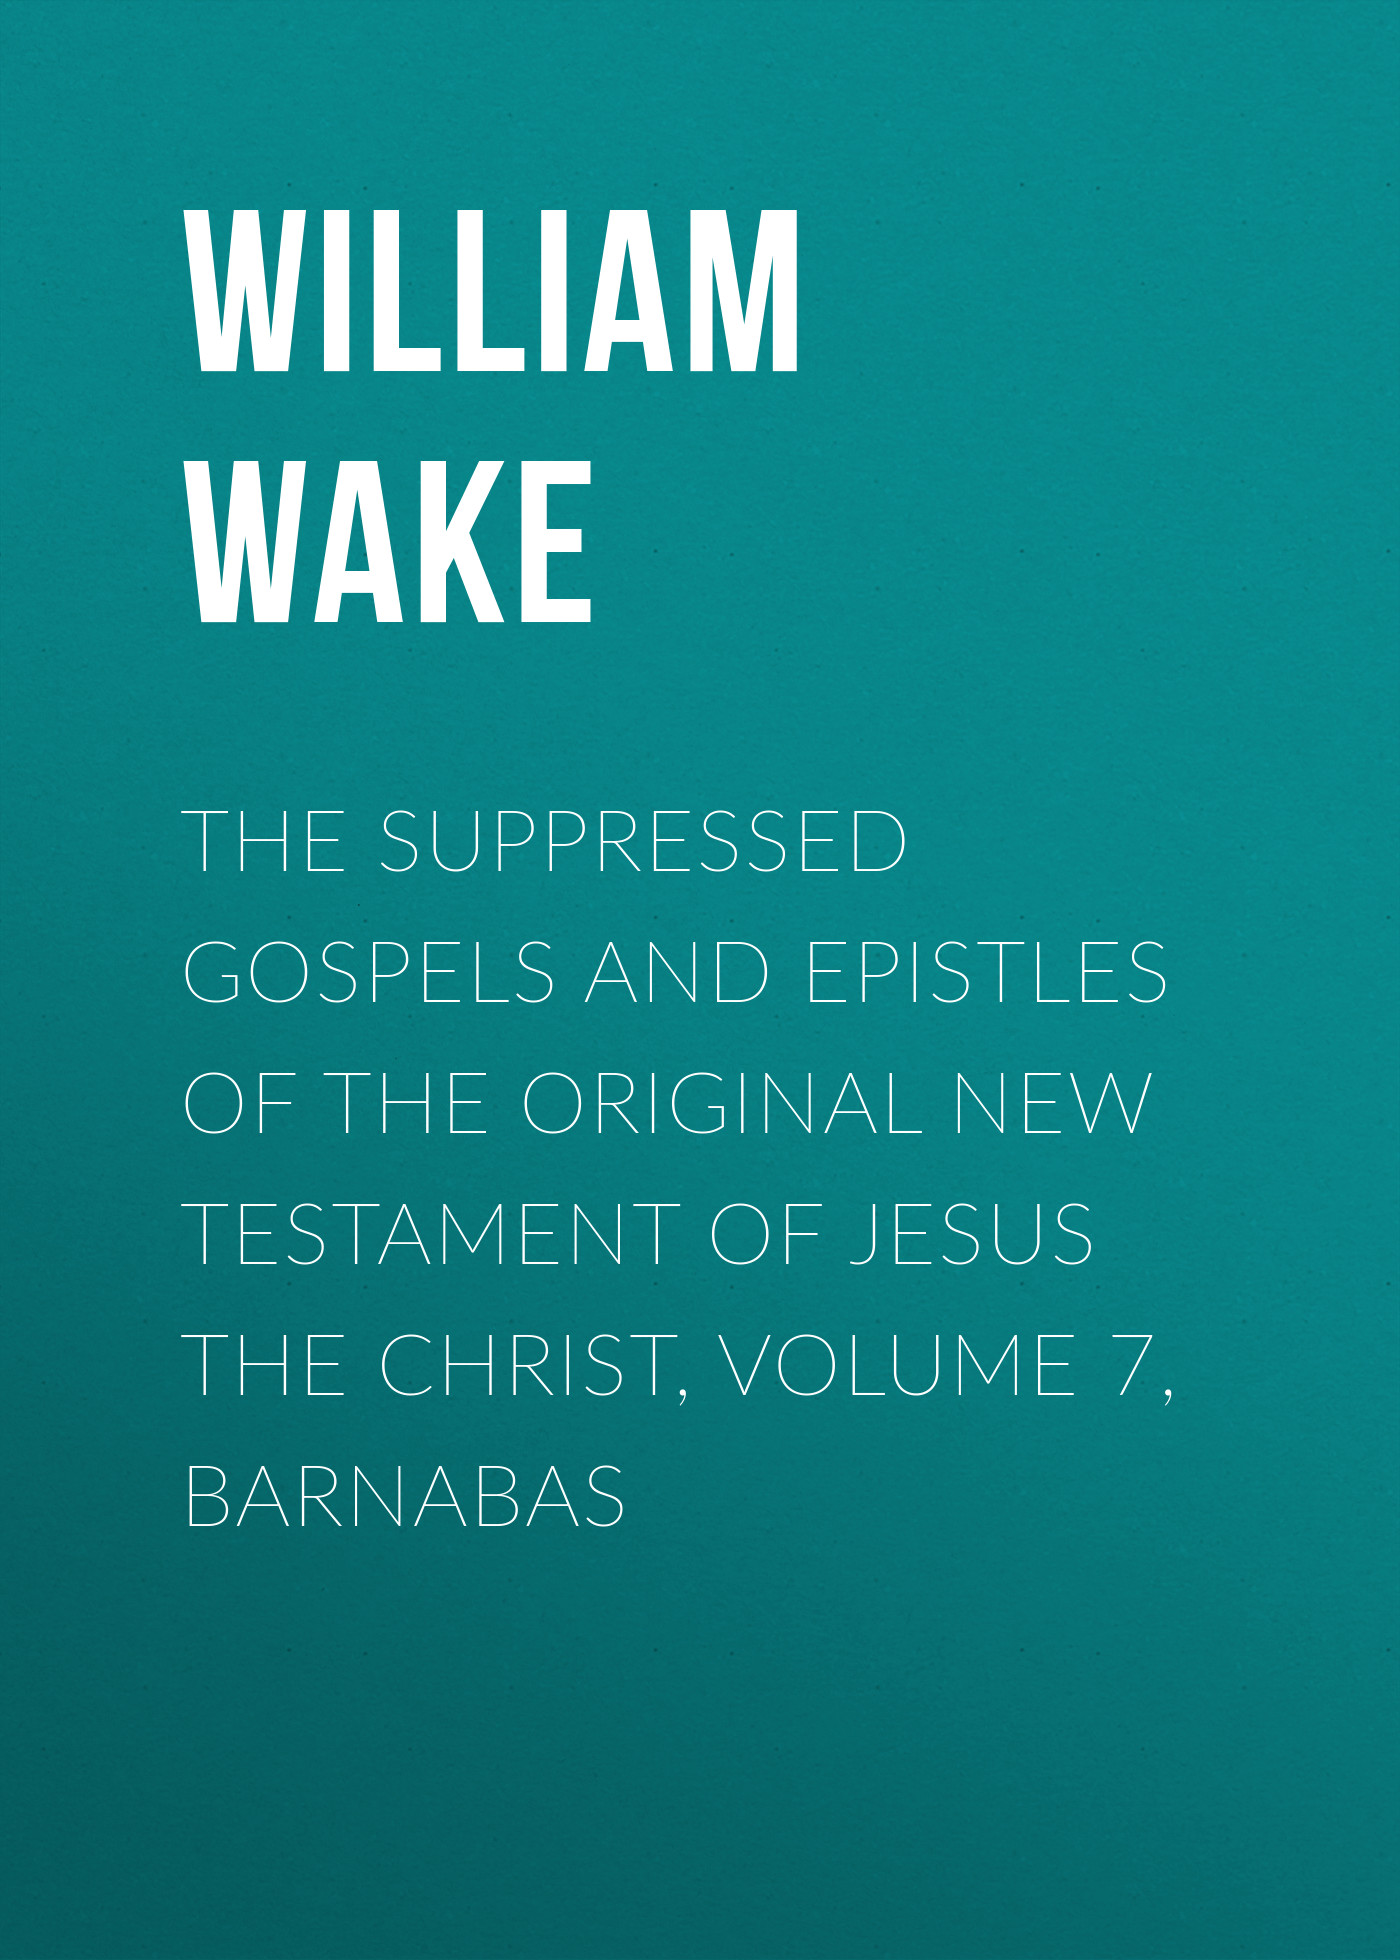 William Wake The suppressed Gospels and Epistles of the original New Testament of Jesus the Christ, Volume 7, Barnabas frey j the final testament